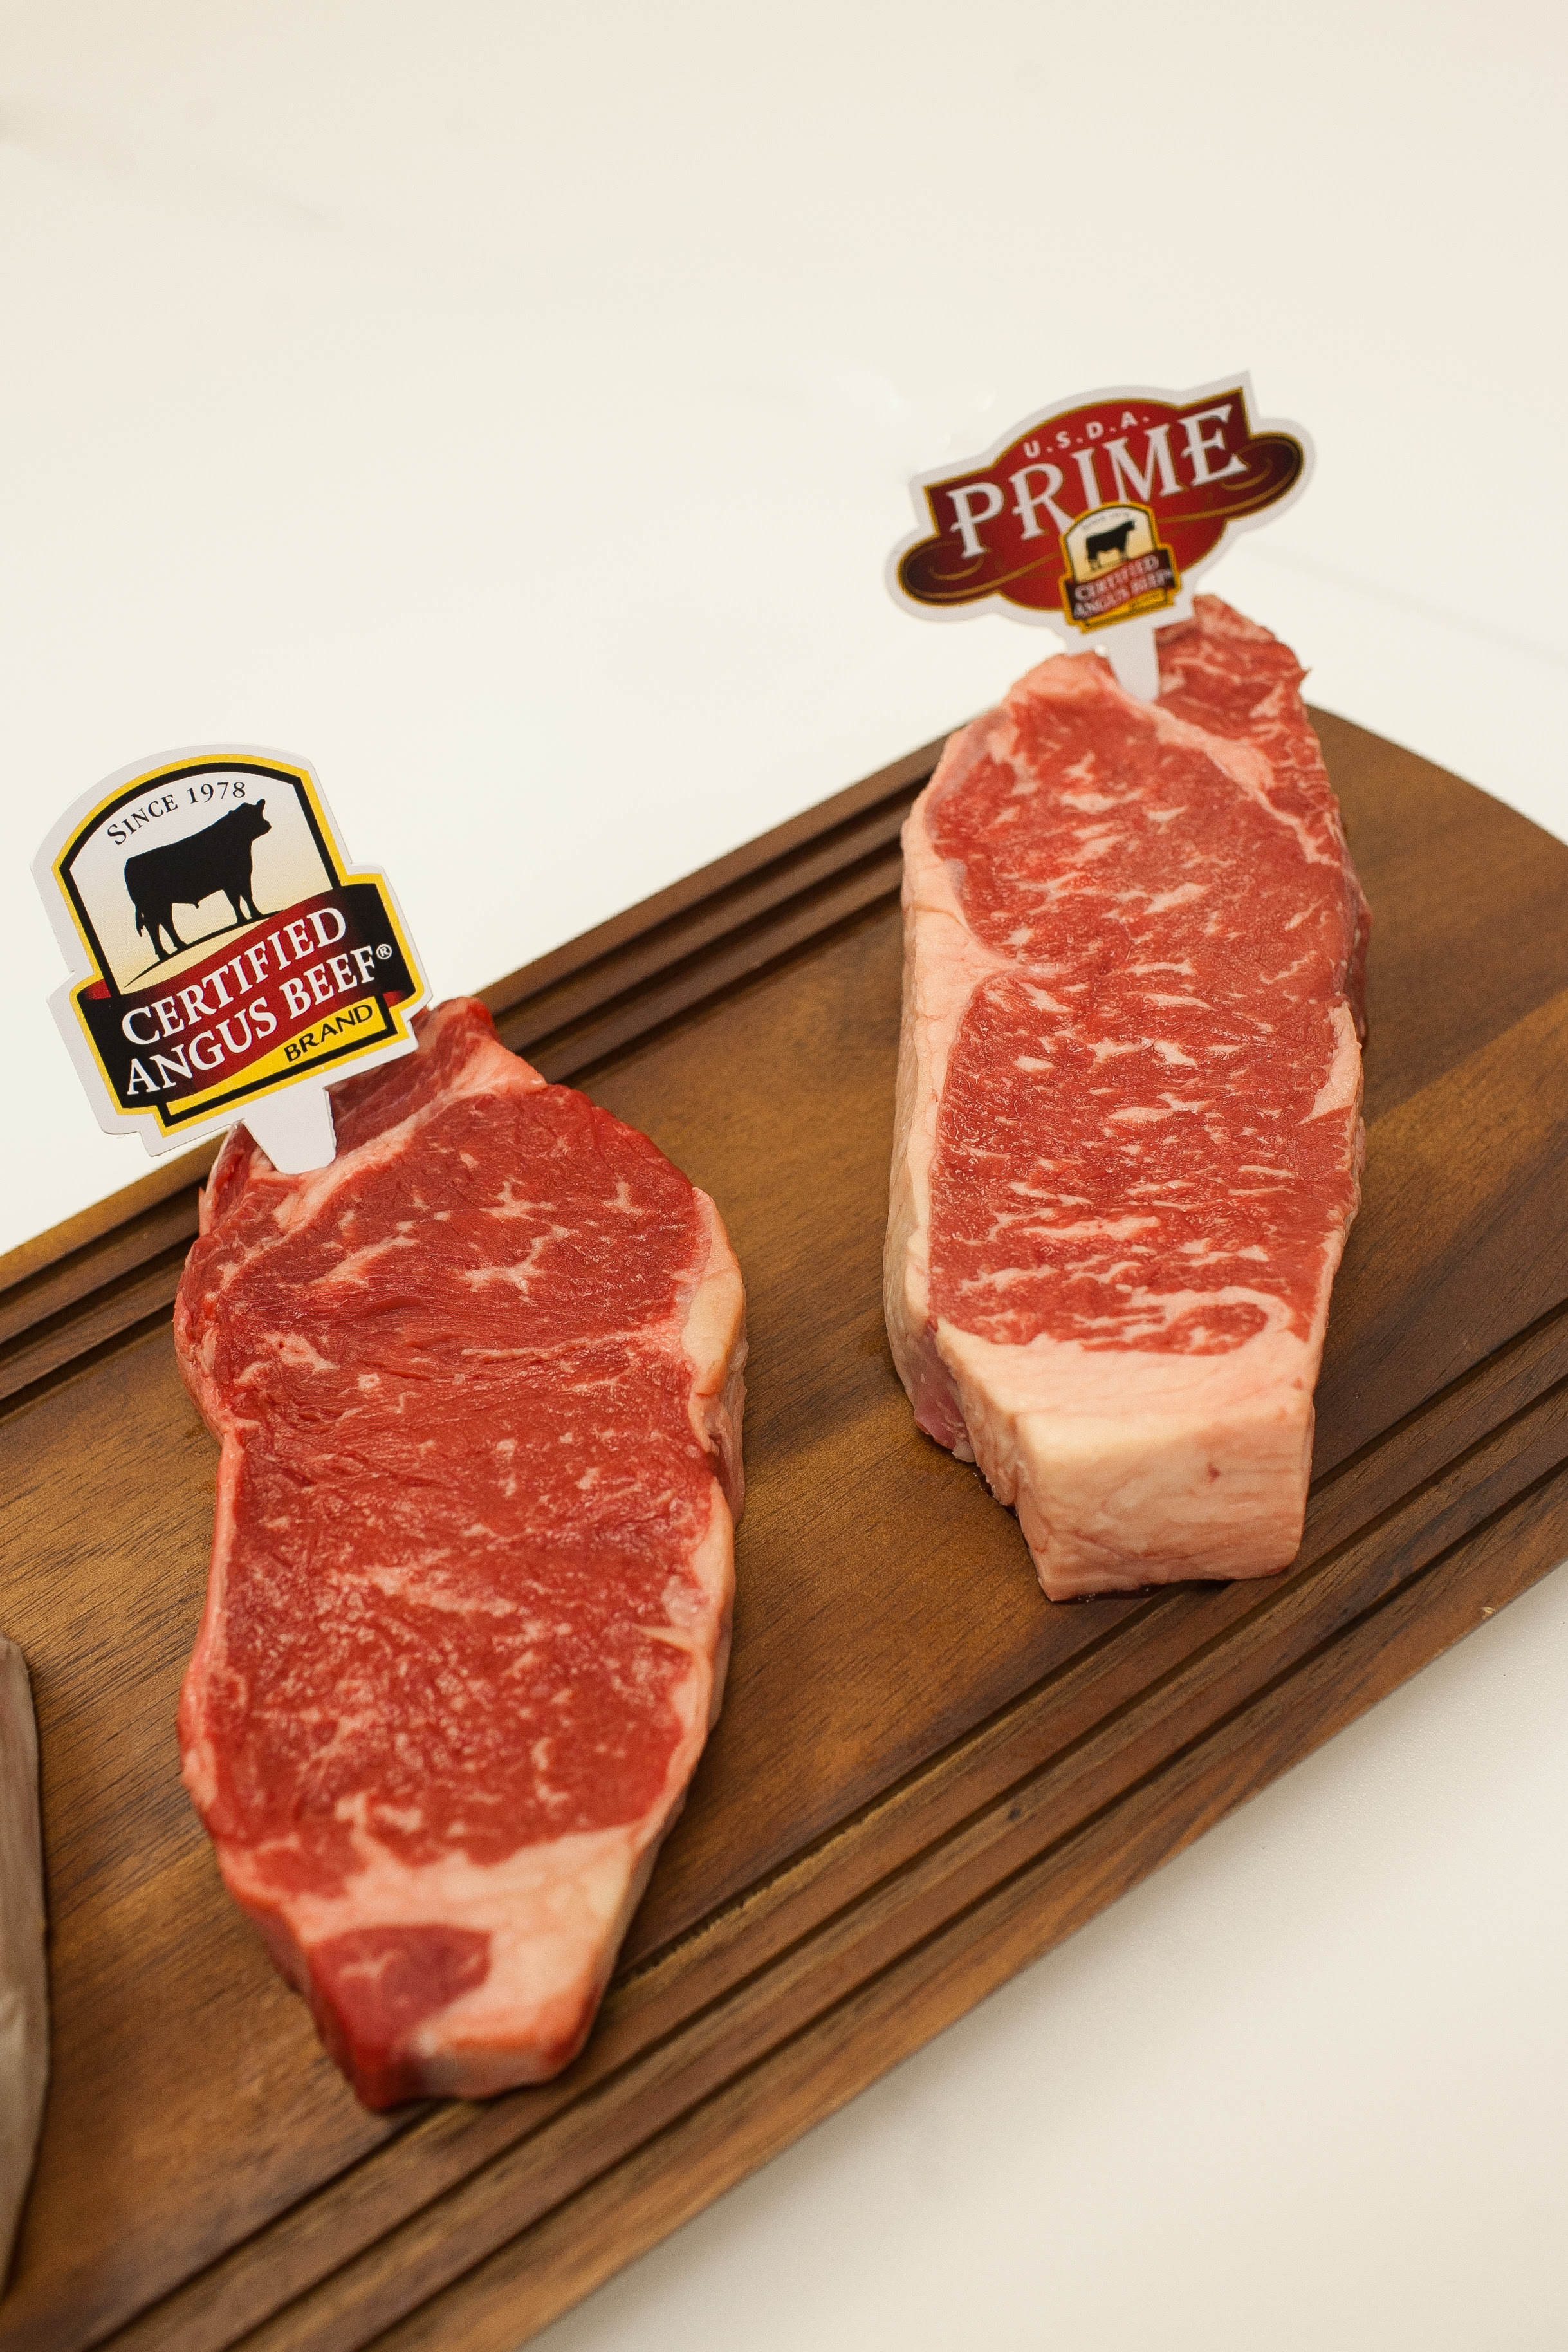 certified-angus-beef-and-usda-prime-cab-1